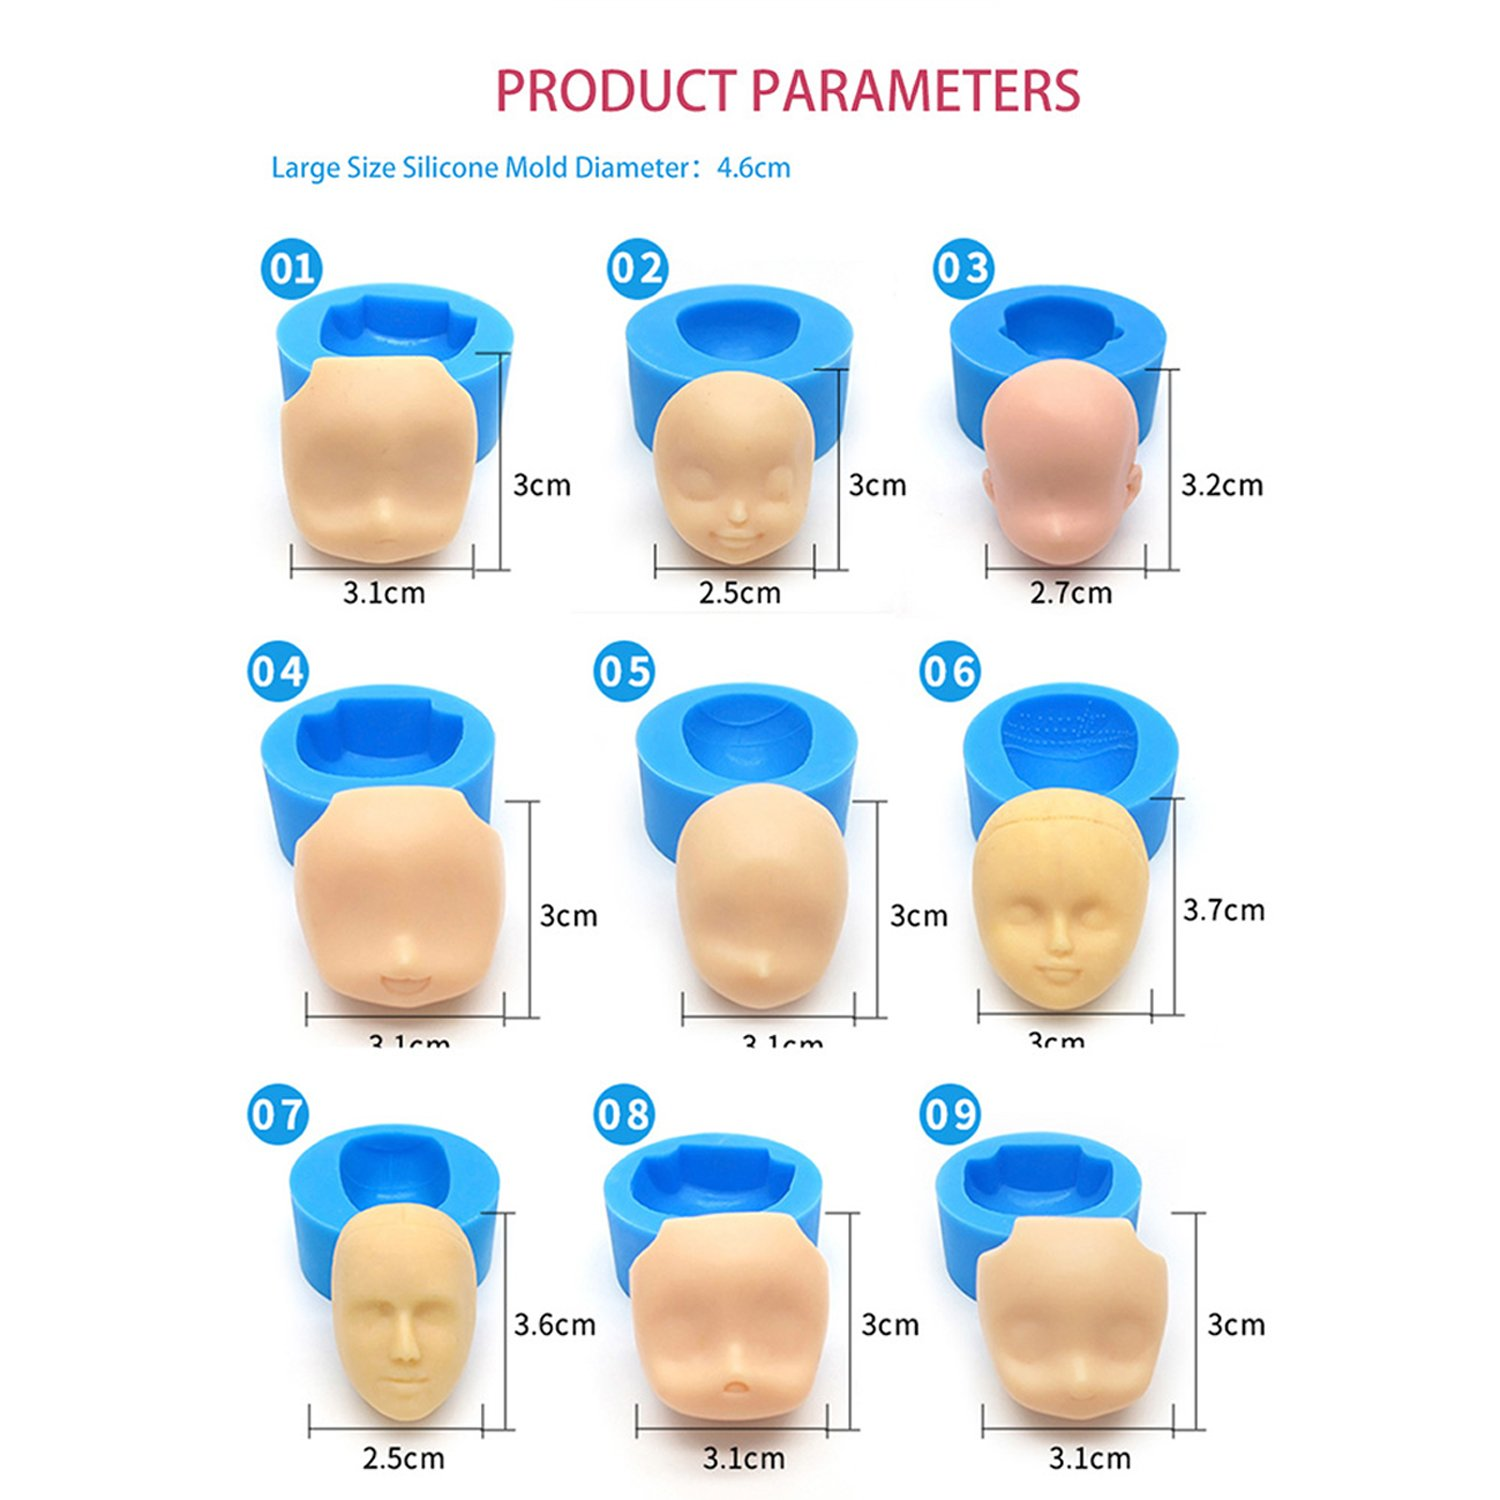 mofa 9 PCS of Set Human Face Shaped 3D Silicone Cake Fondant Mold, Cake Decoration Tools, Soap, Candle Moulds,Fondant, Polymer Clay, Soap Making, Crafting Projects (Large Size) by mofa (Image #2)